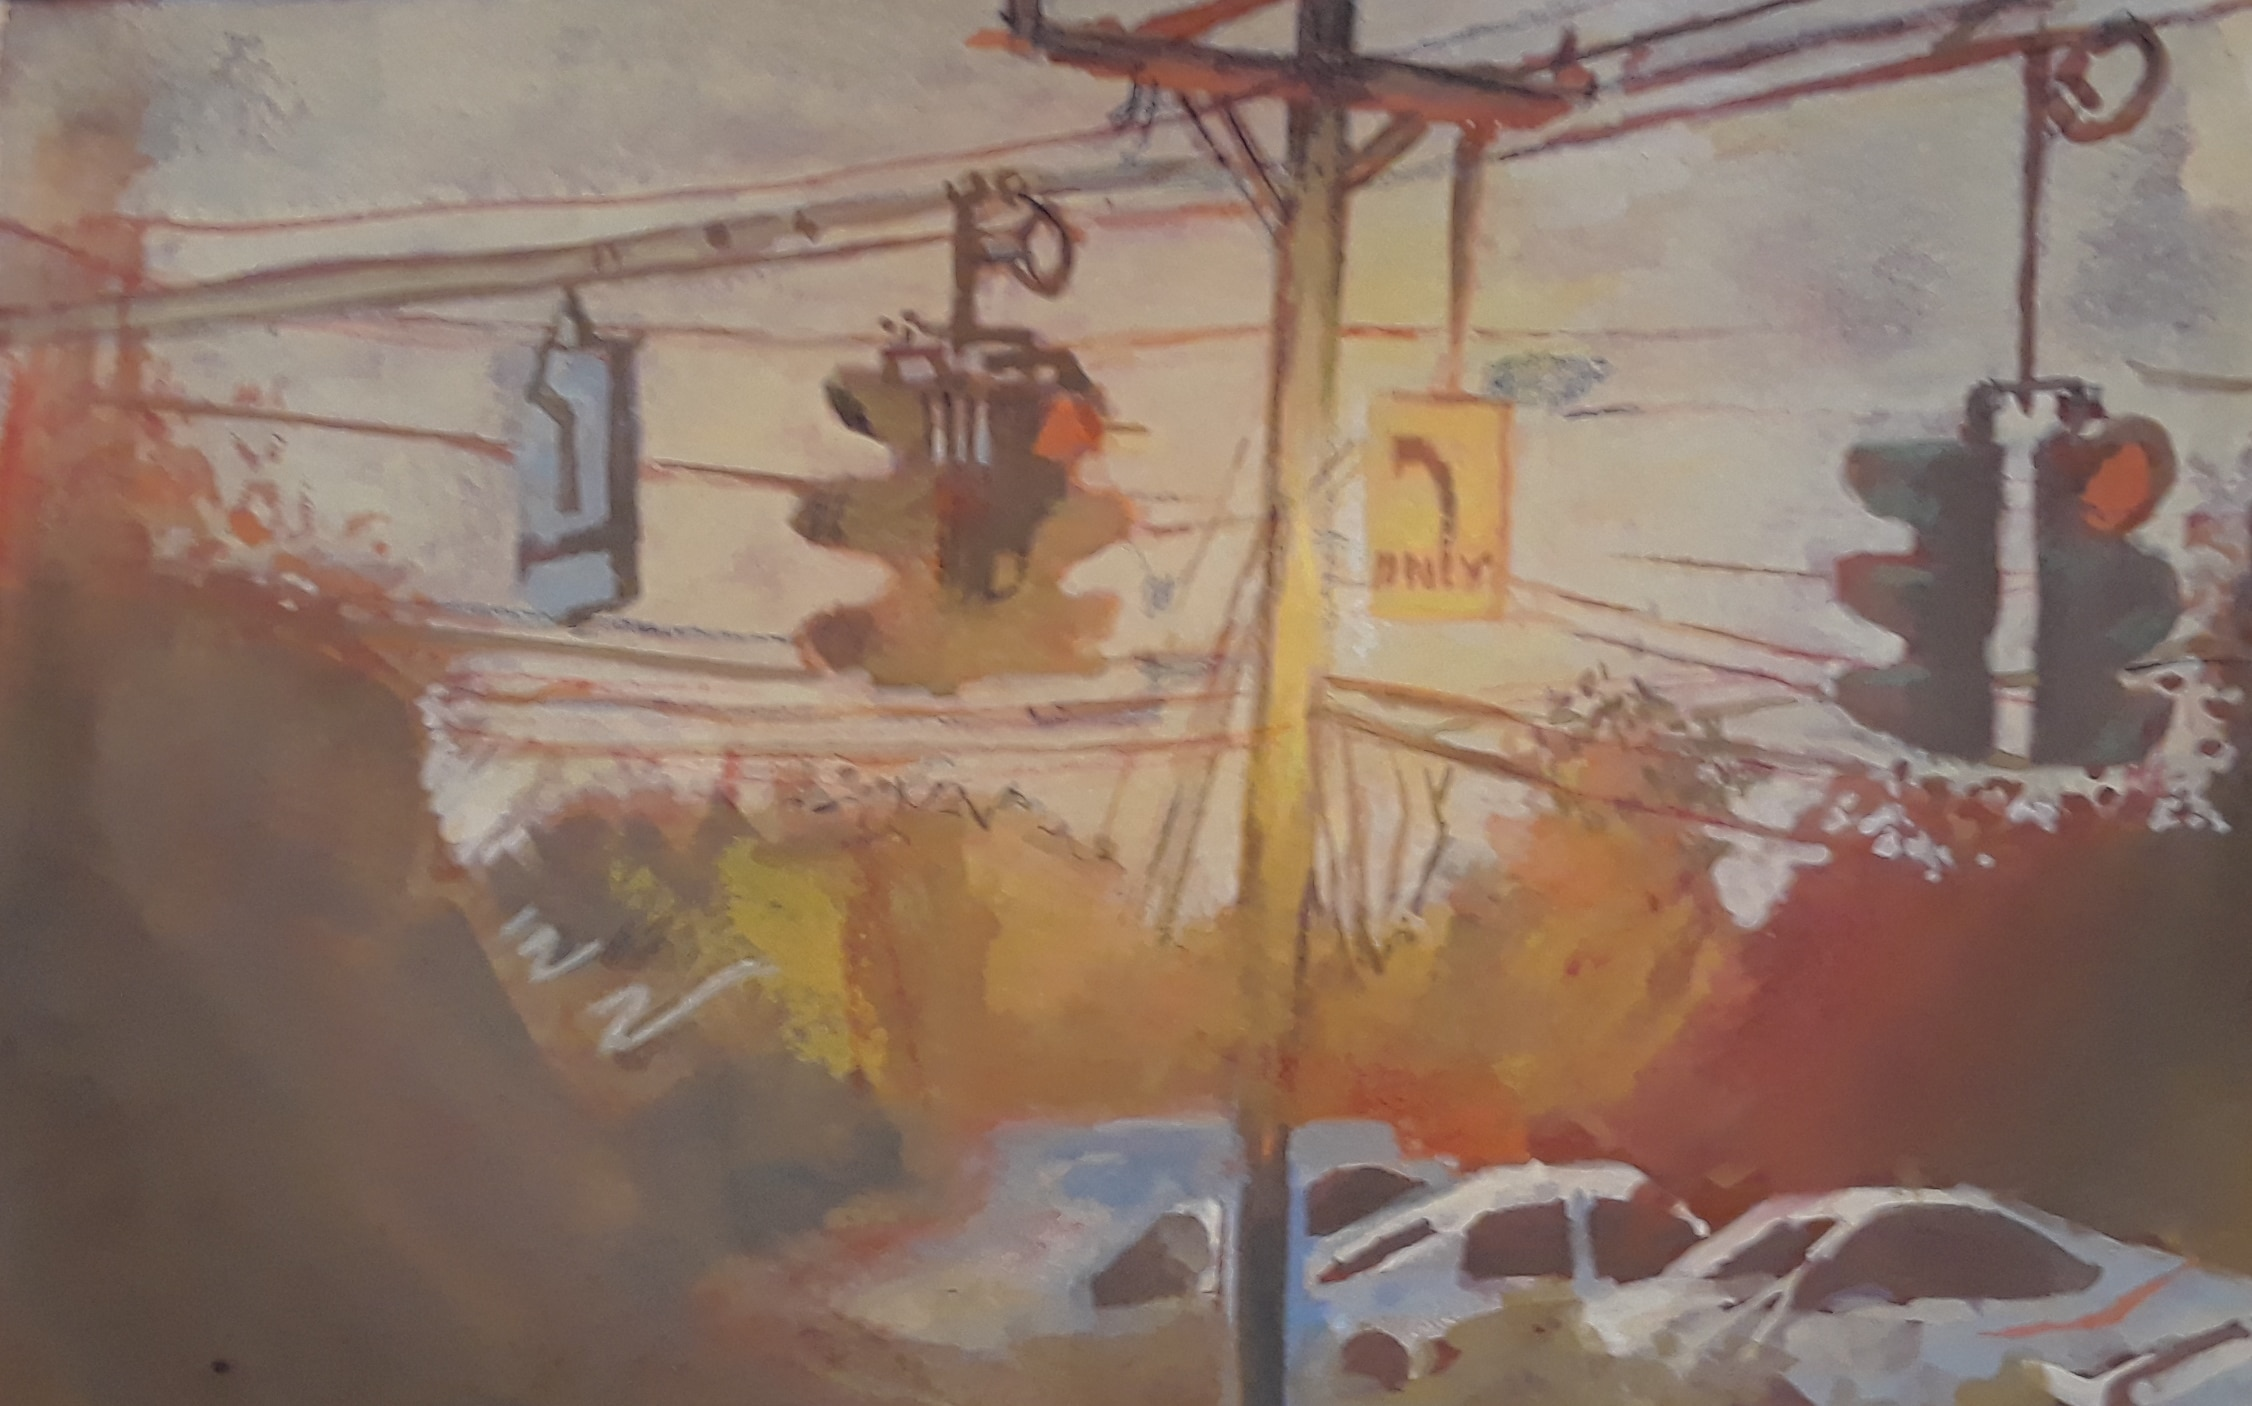 a surreal painting of two traffic lights, a turn sign, and electricity lines. There are white cars in the background among what seems to be fall foliage.